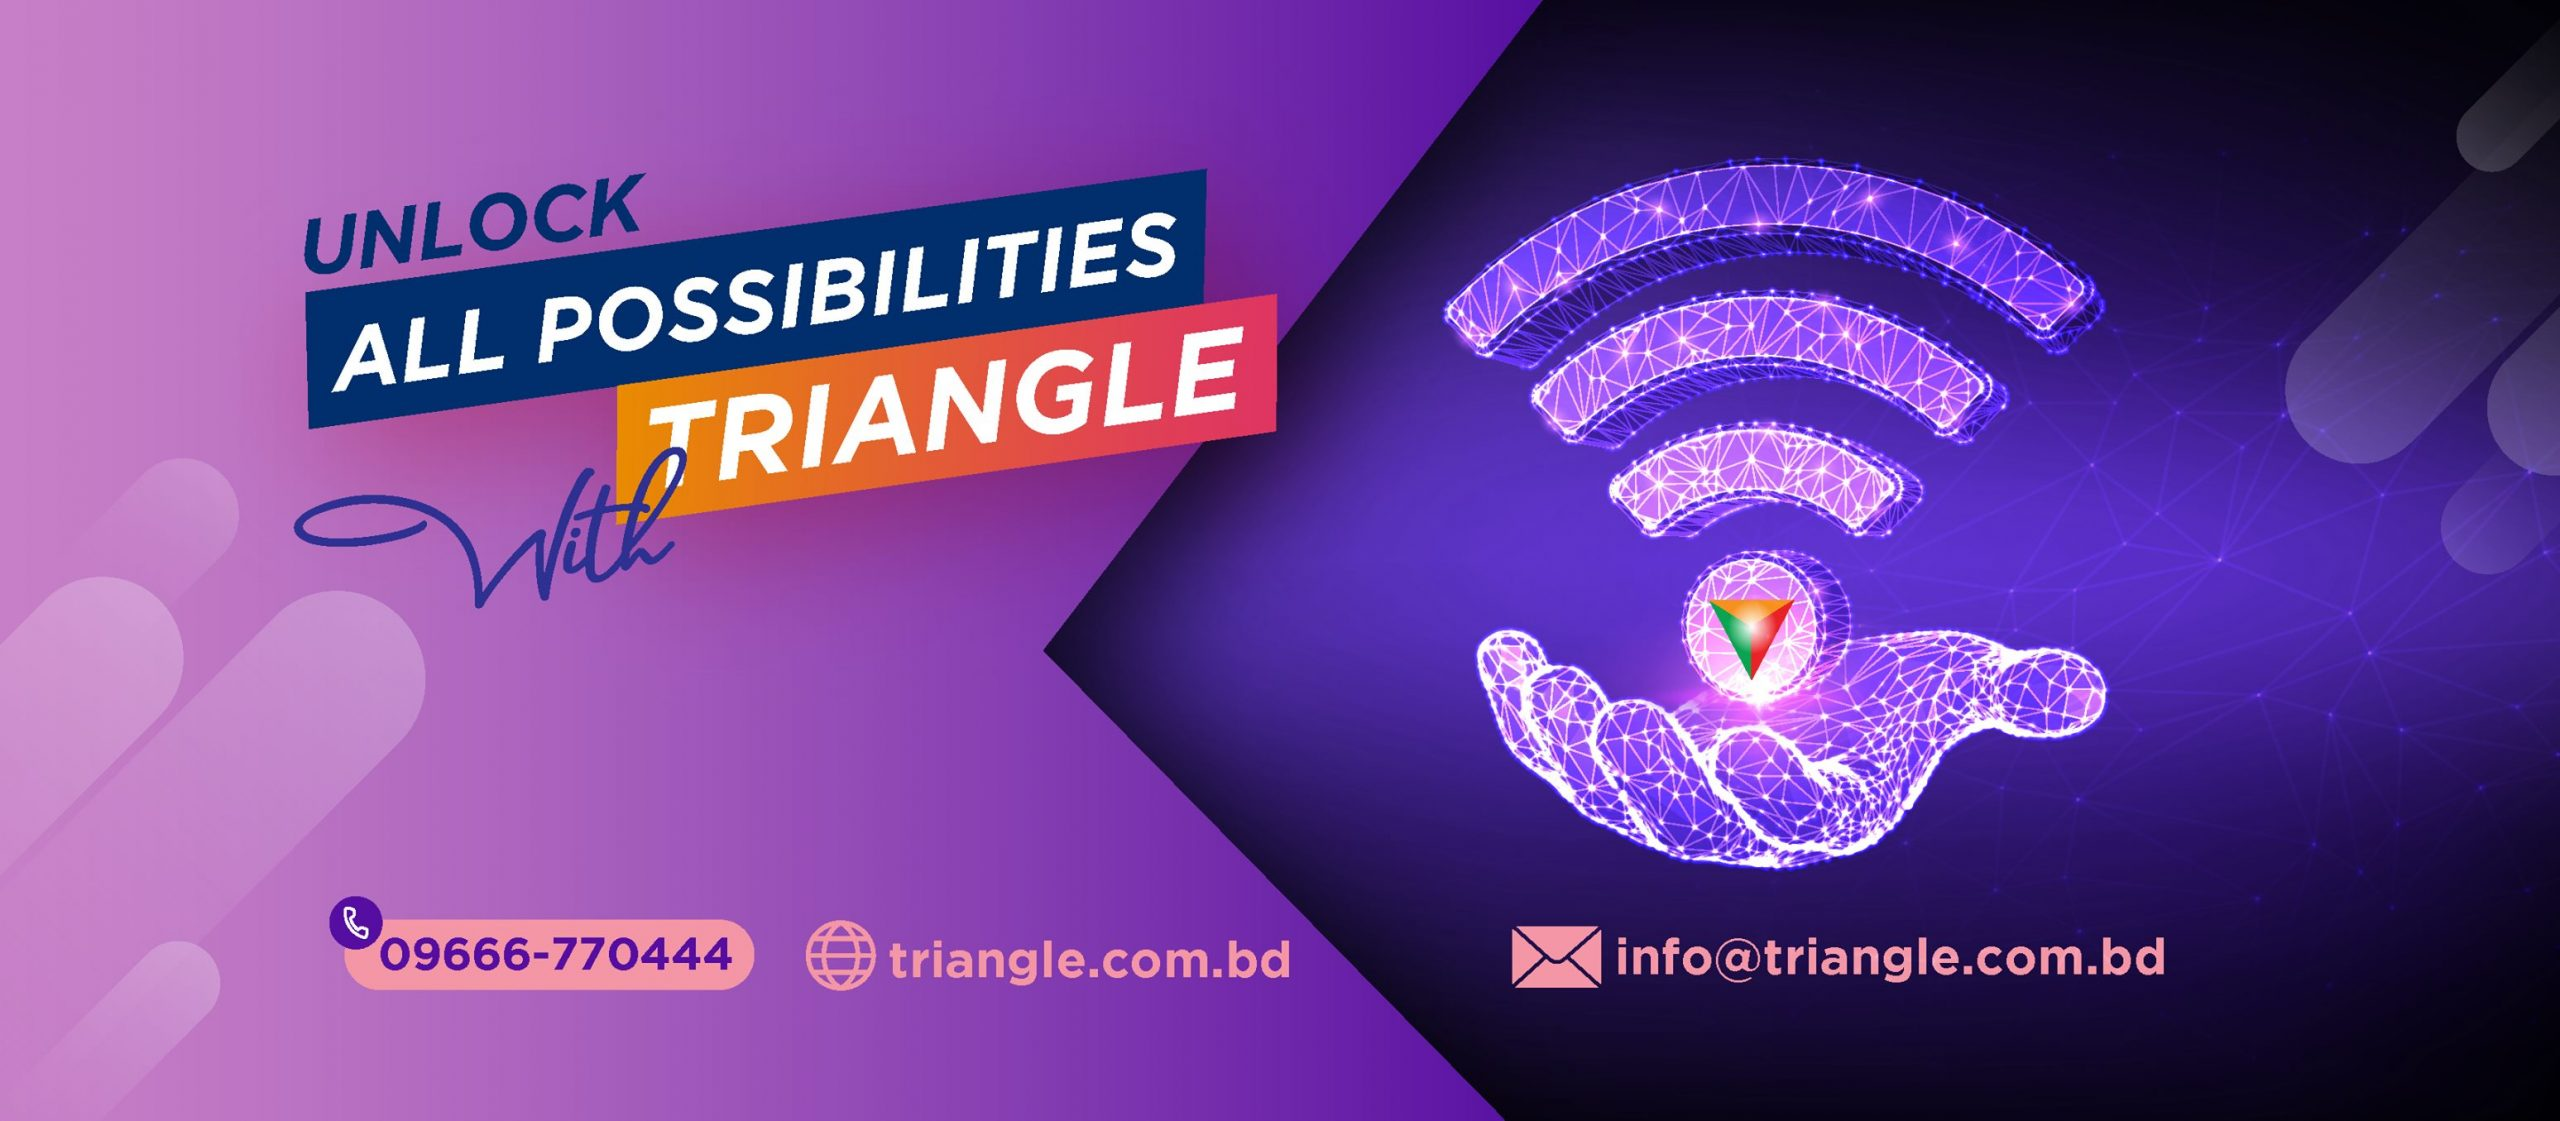 Triangle Services Limited